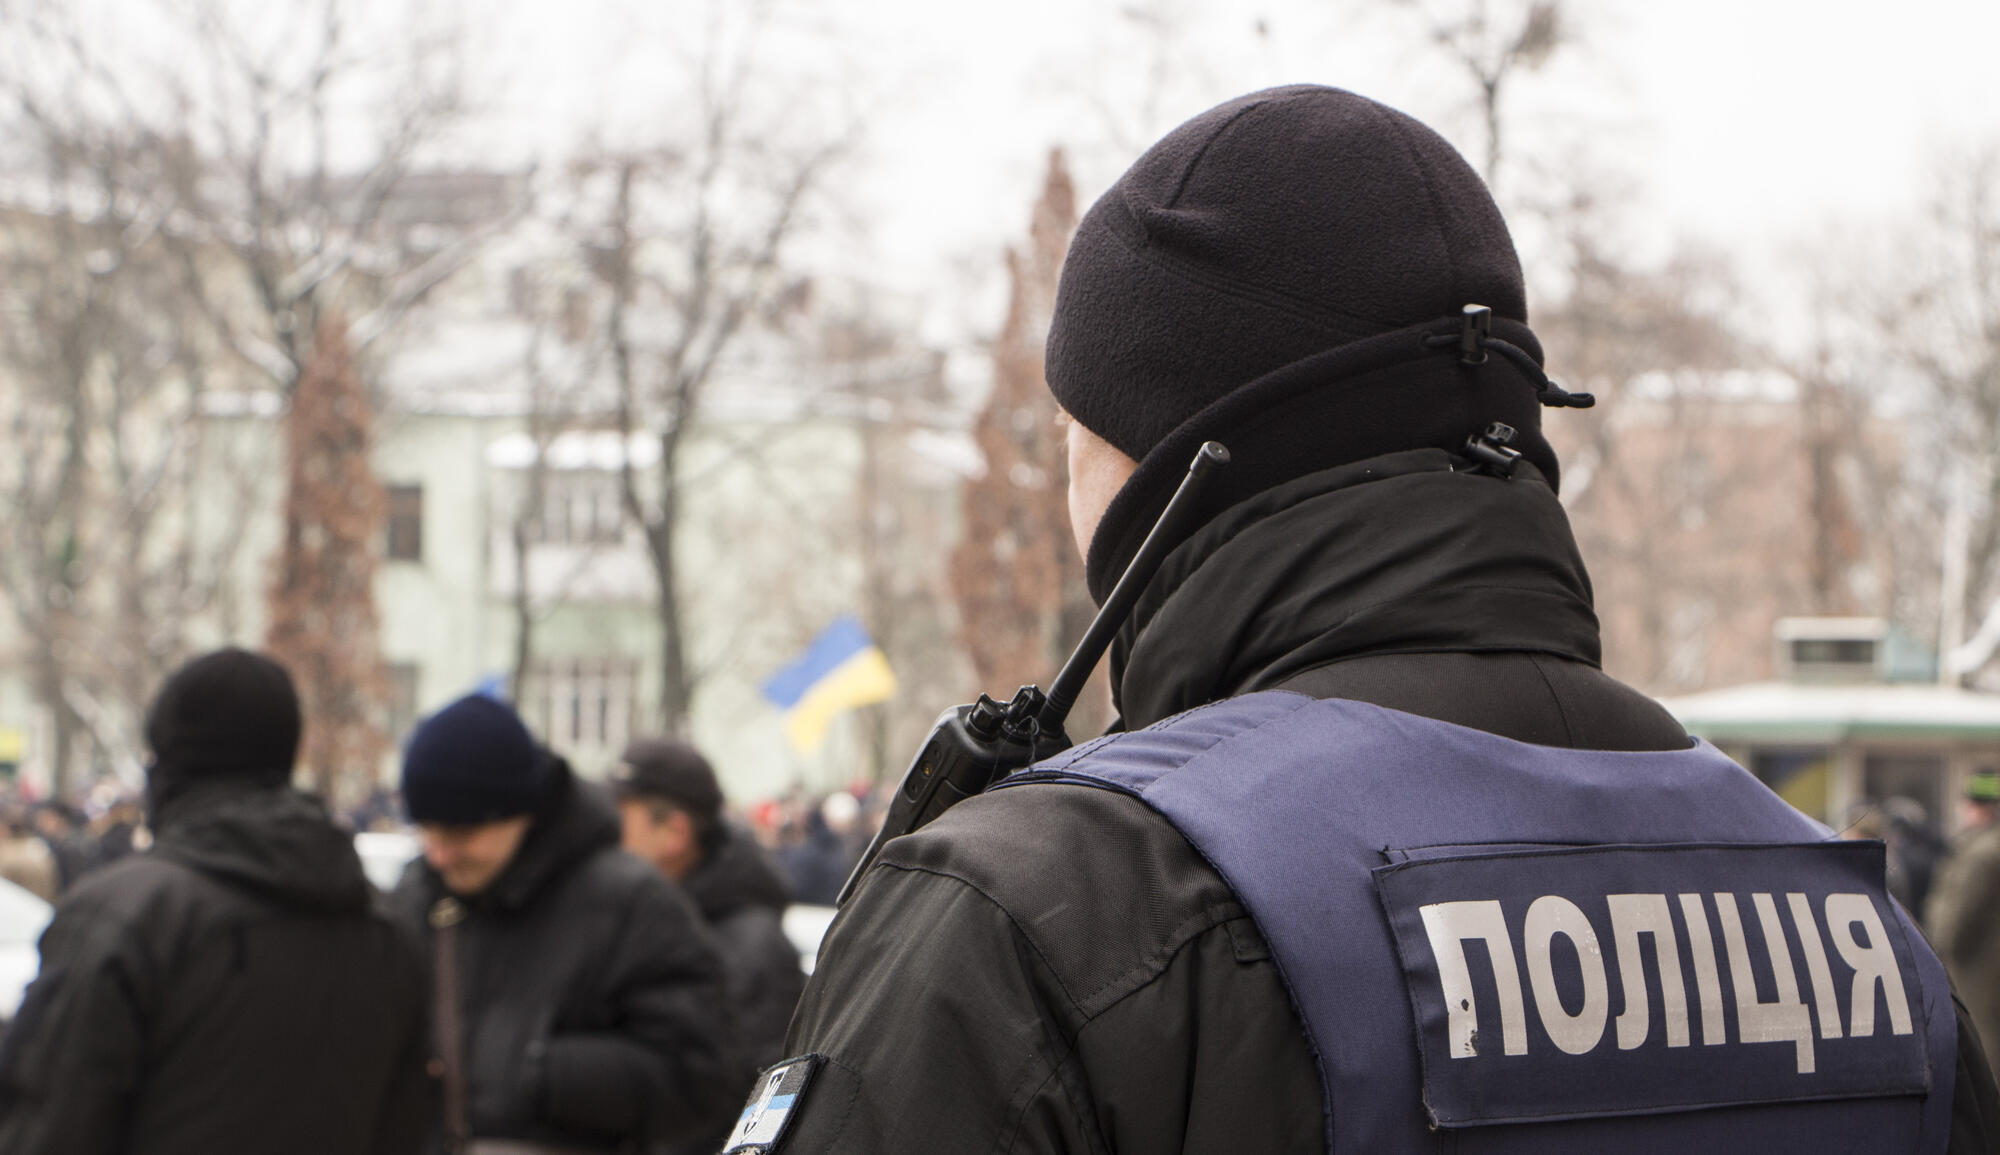 Stock photo of police in Ukraine